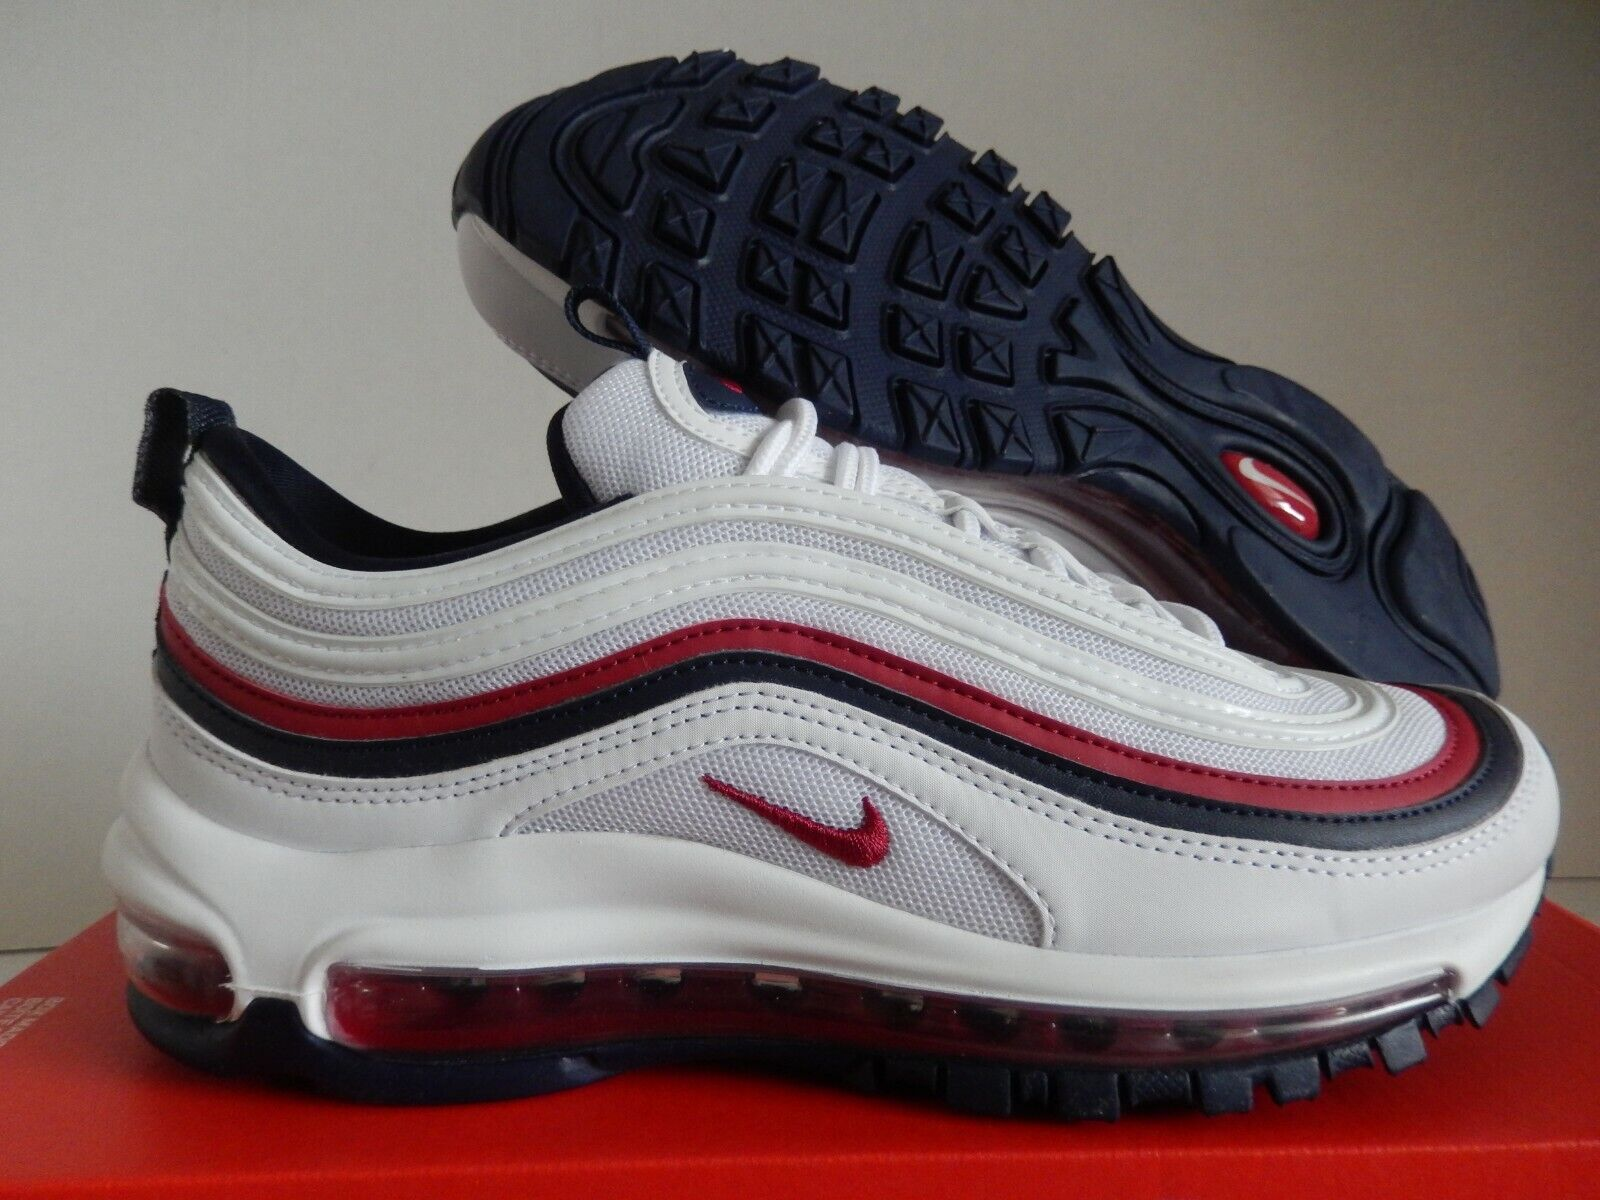 WMNS NIKE AIR MAX 97 WHITE RED CRUSH BLACKENED BLUE SZ 8 [921733 102]